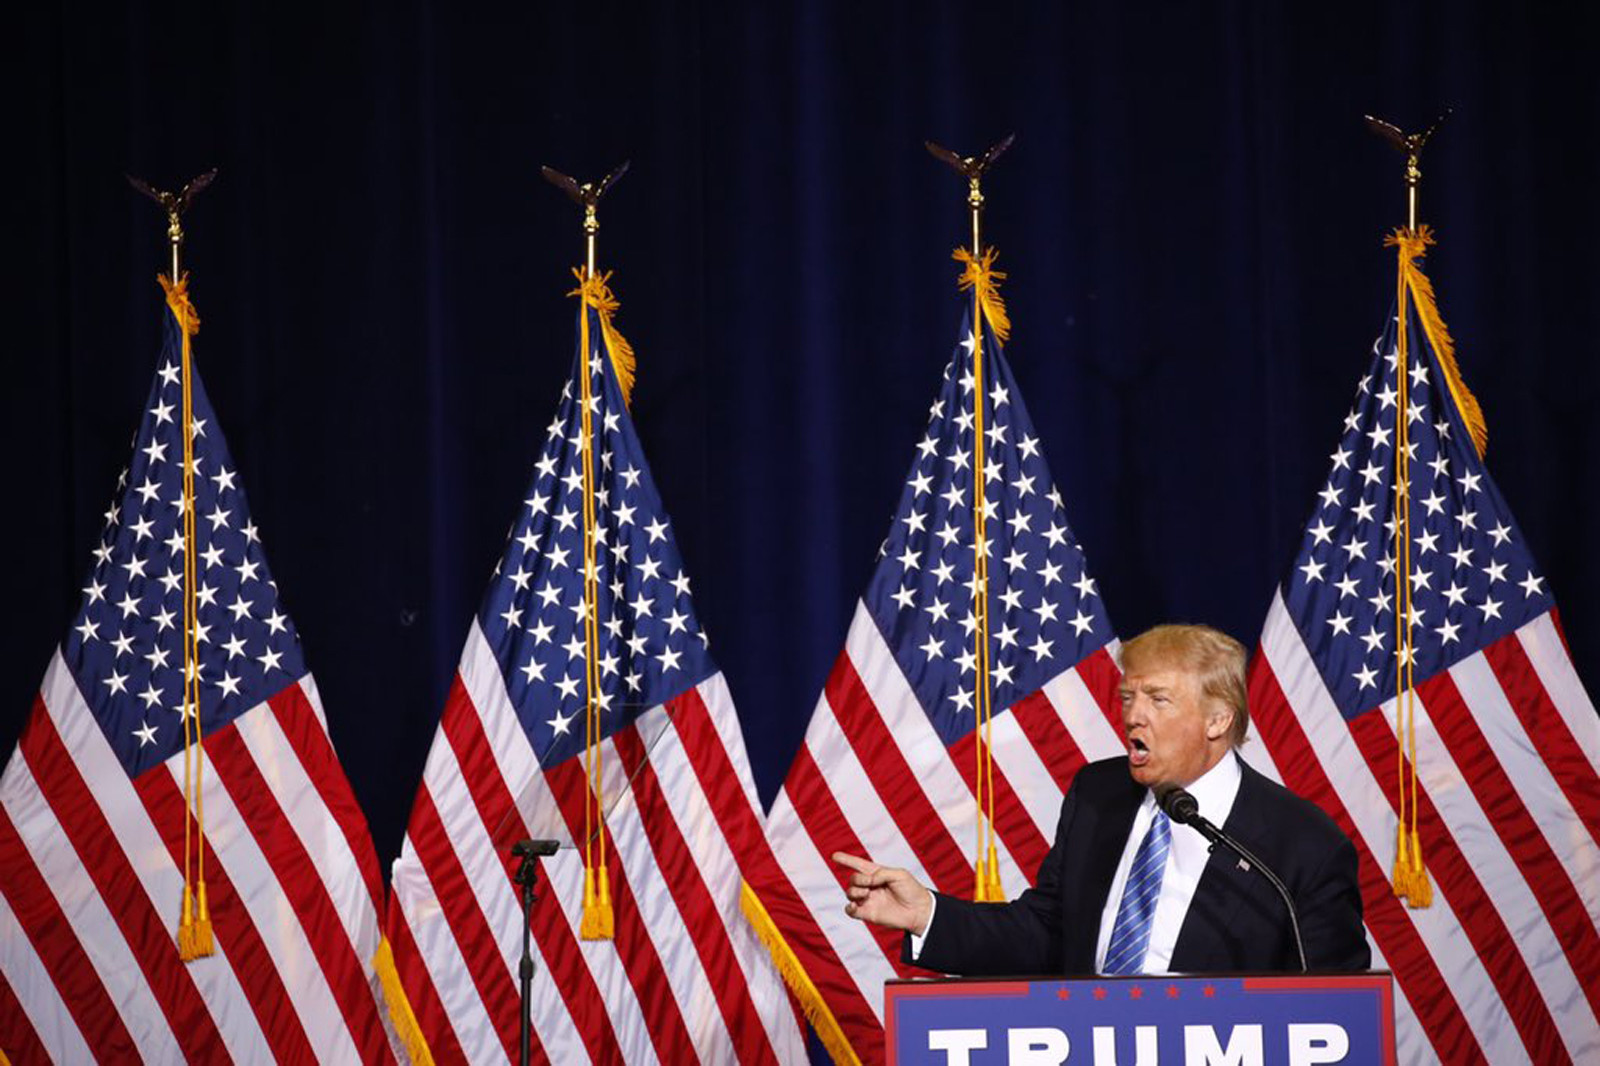 Donald Trump plans to write his inaugural speech HIMSELF Forbes